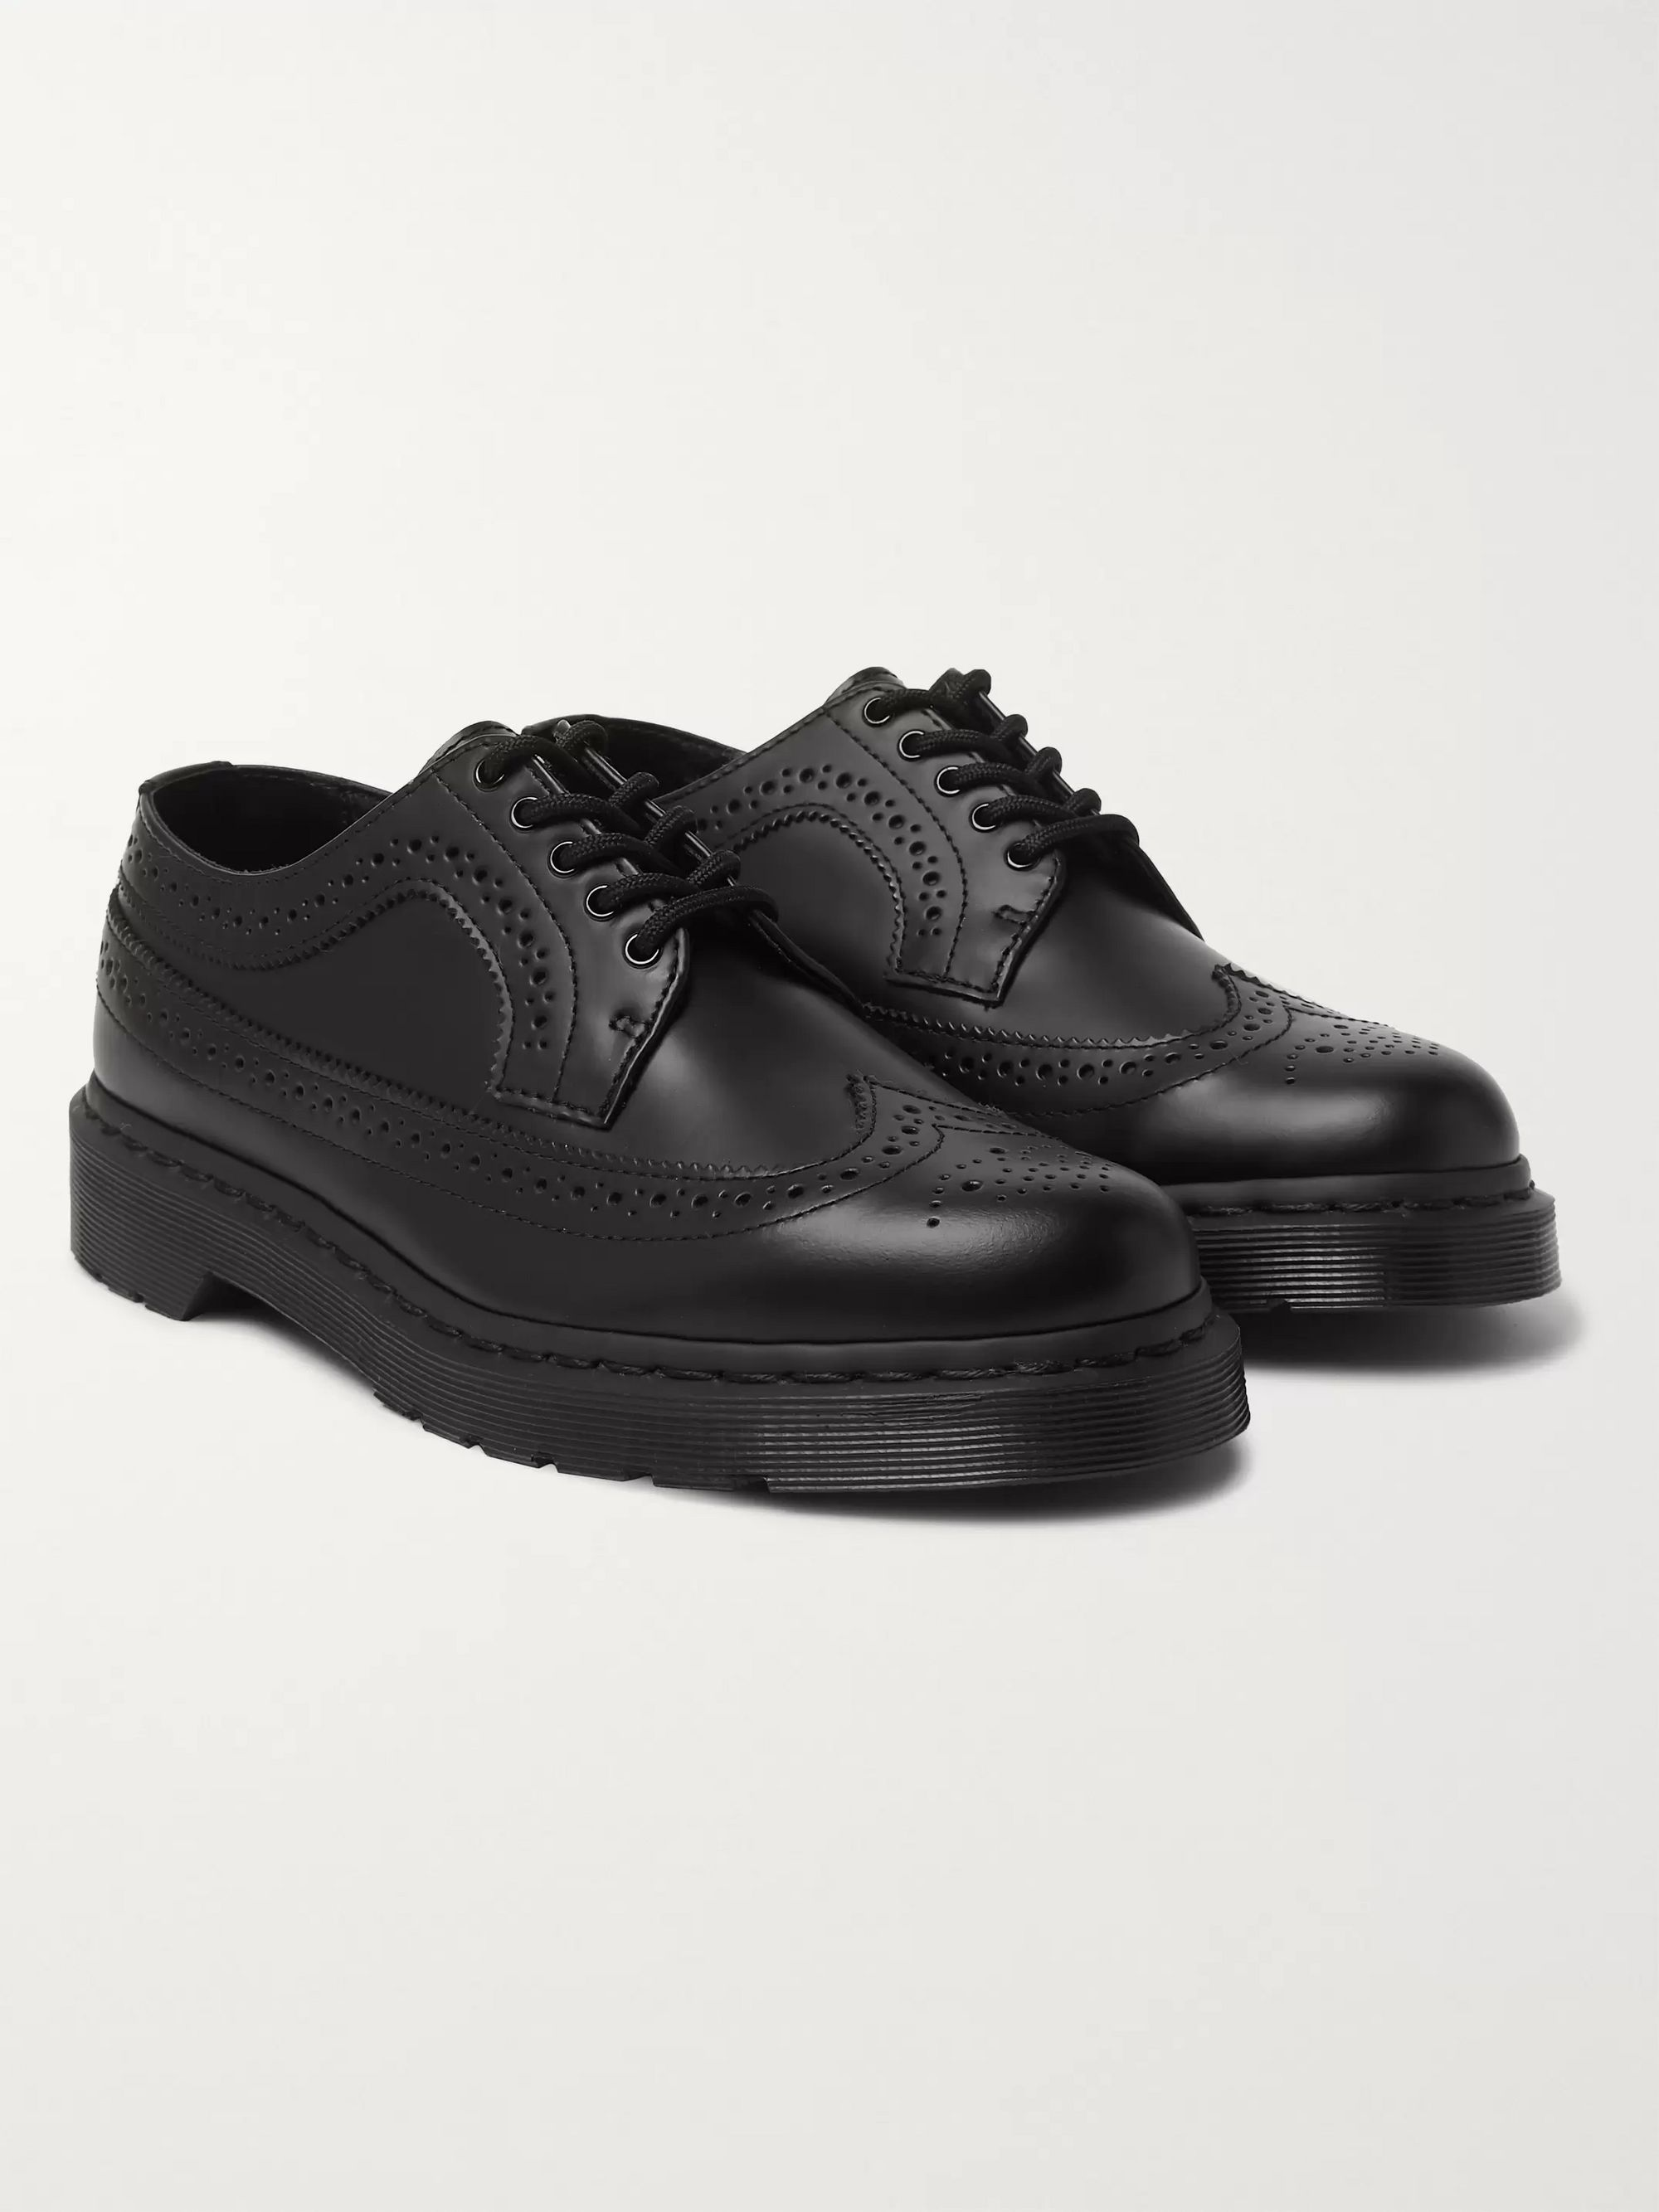 Mono Leather Wingtip Brogues by Dr. Martens